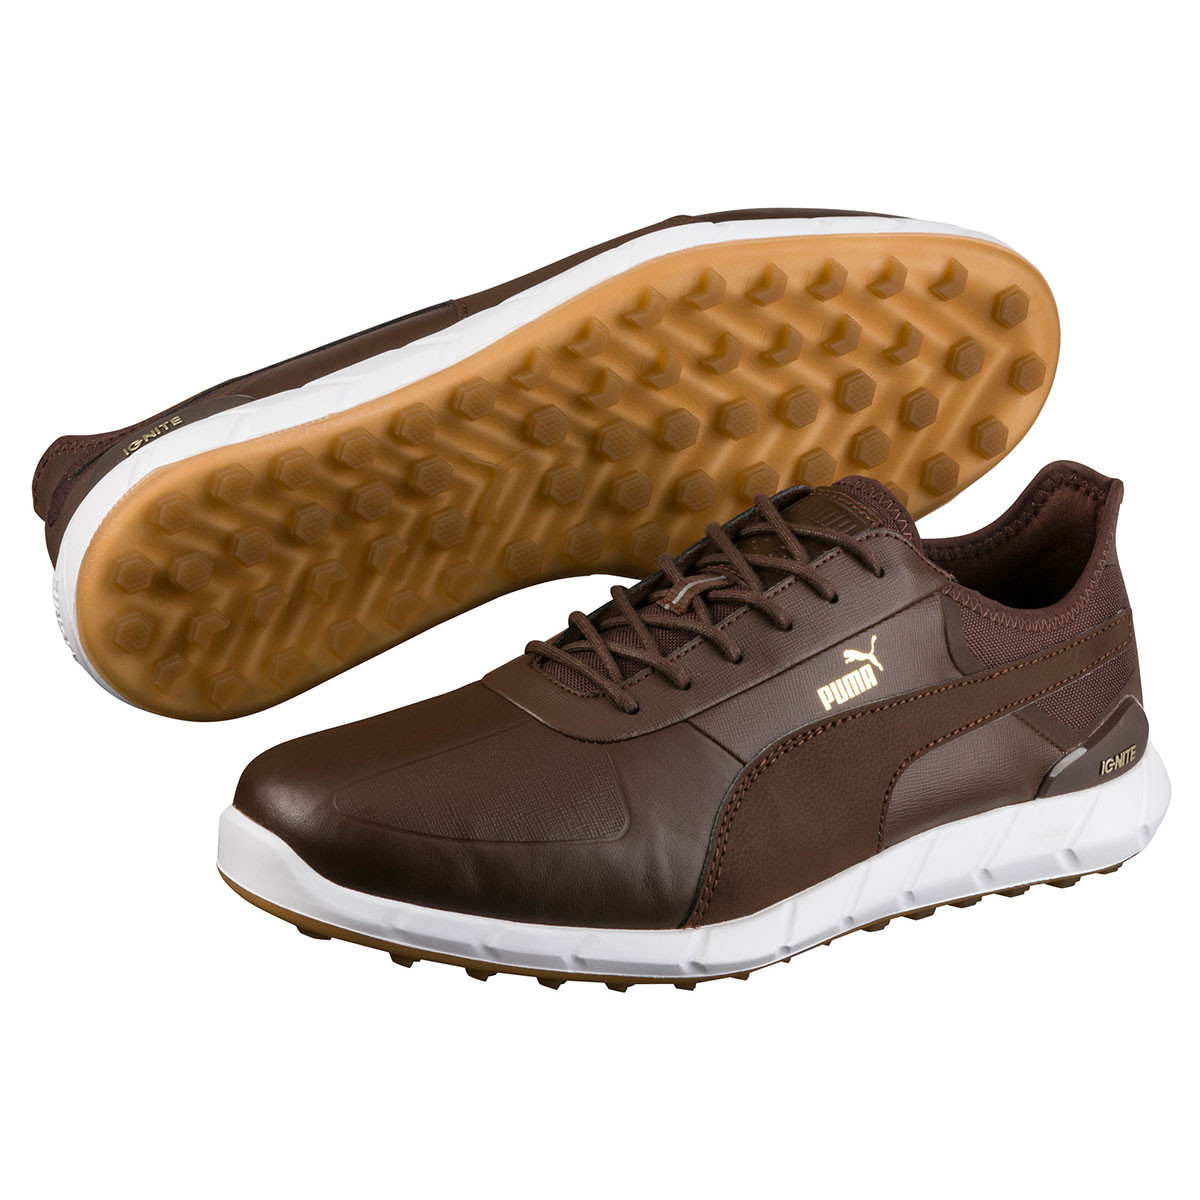 9f7595fbd1e168 Puma Golf Mens Waterproof Ignite Spikeless Lux Golf Shoes